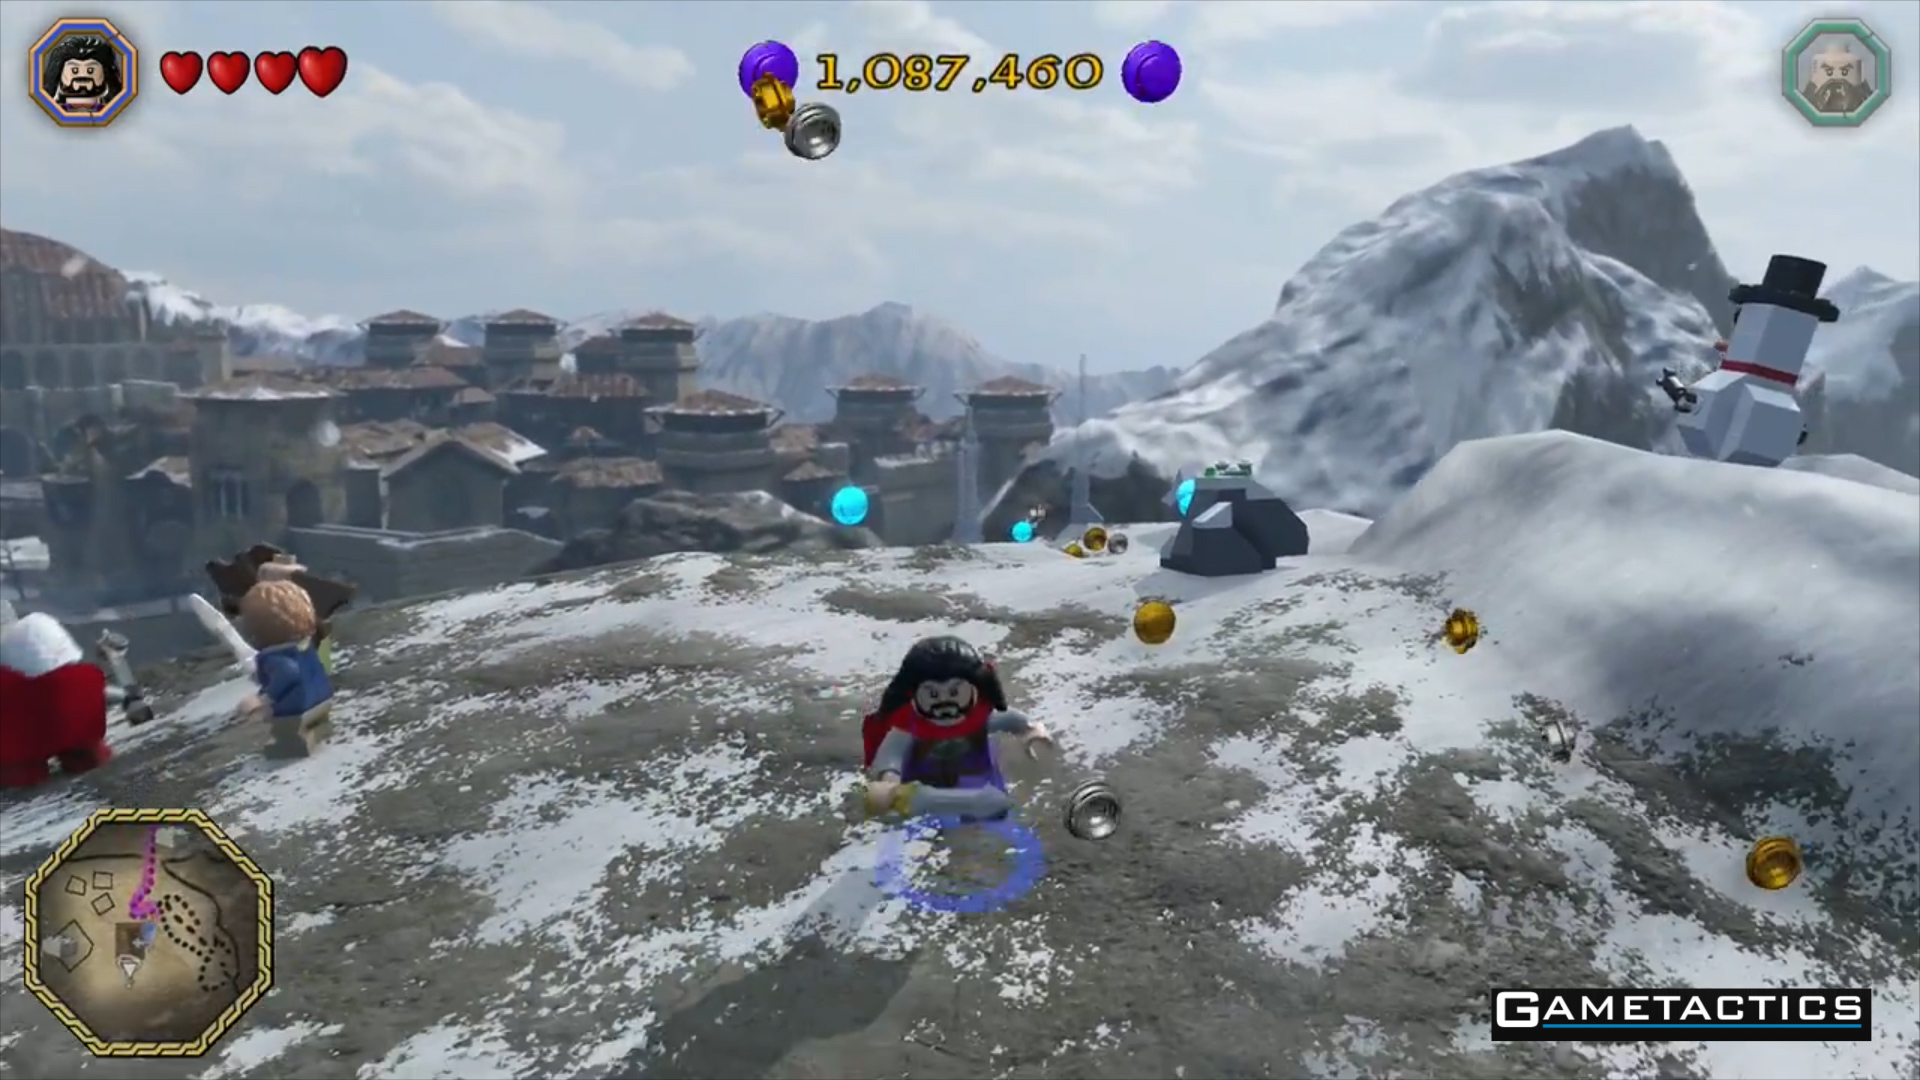 New Lego Games For Ps3 : Lego the hobbit review u xbox also on ds playstation